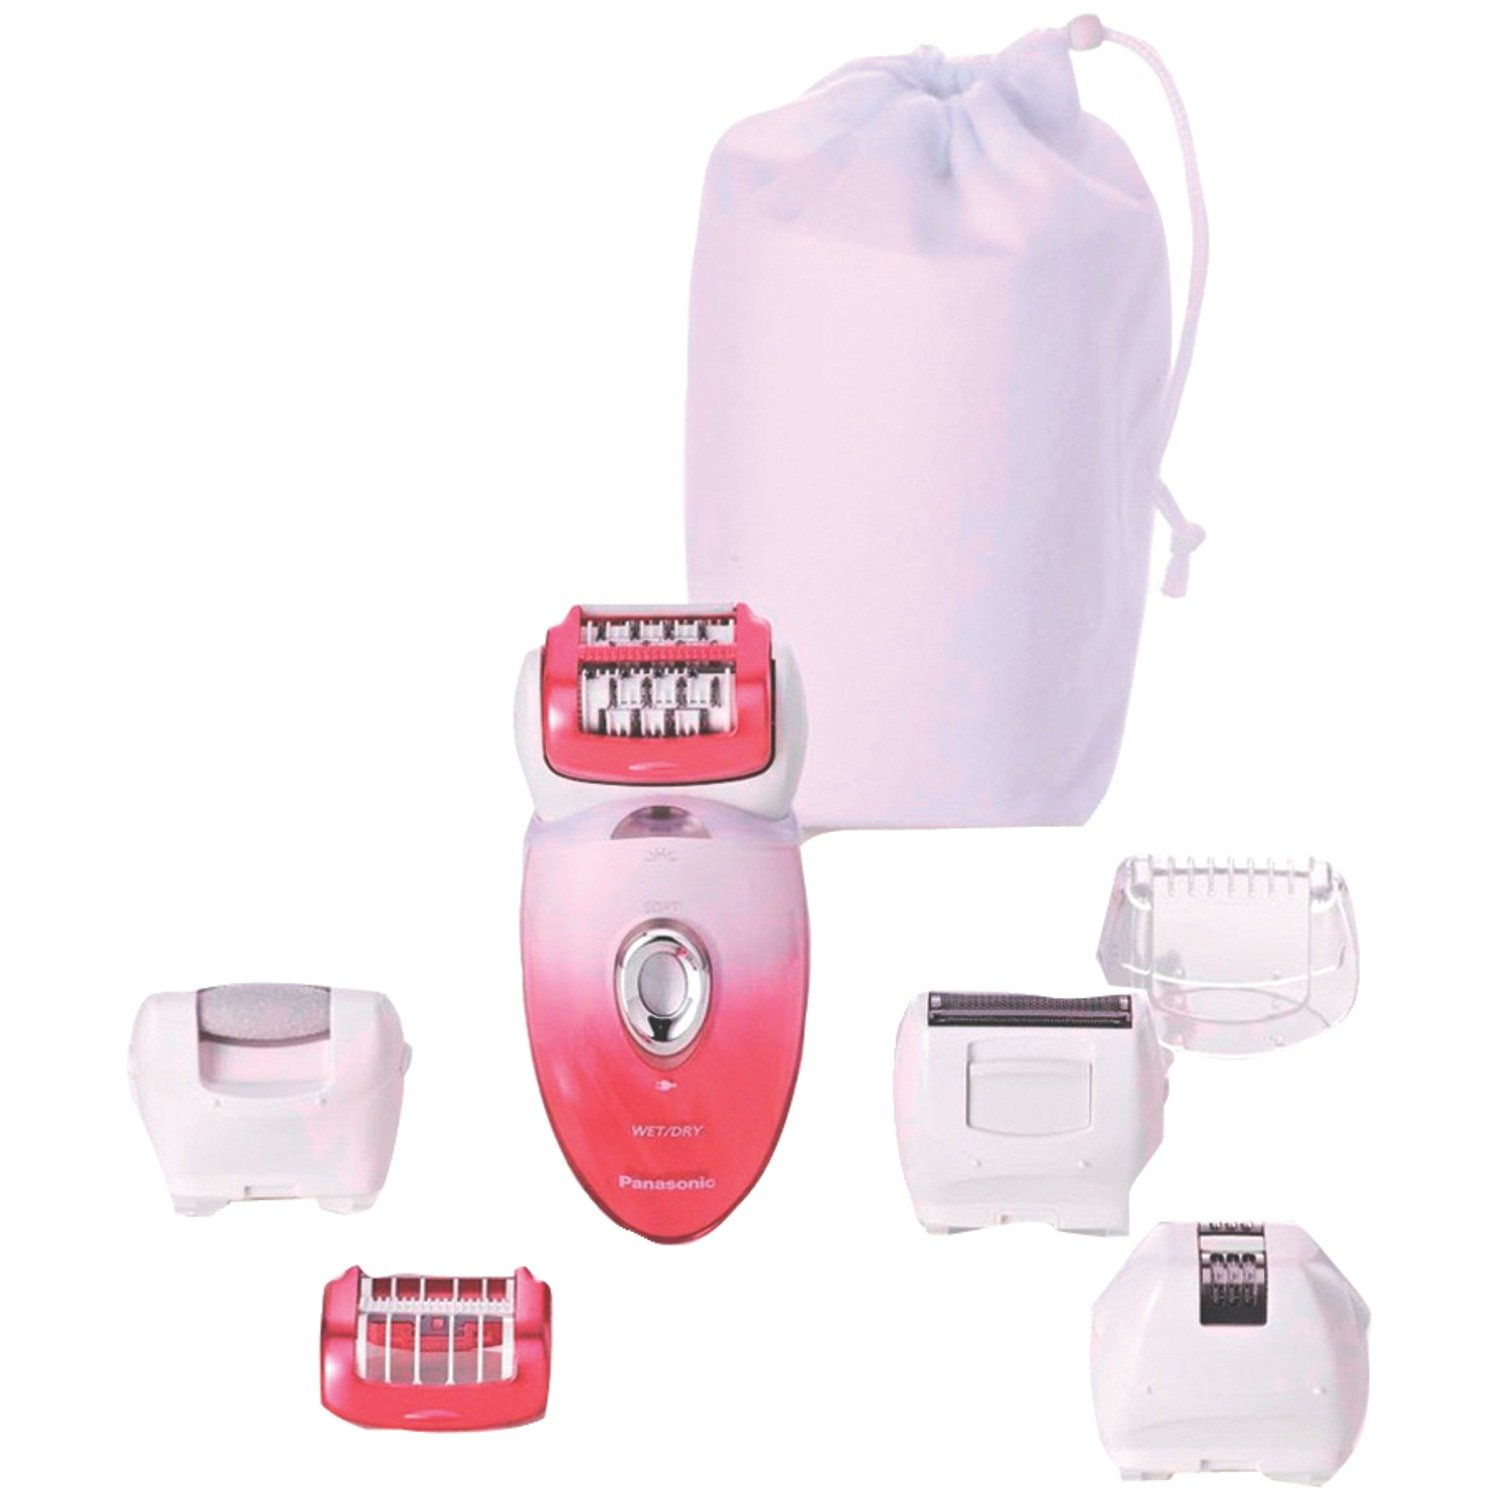 Panasonic ES-ED90-P Ladies Wet and Dry Epilator/Shaver